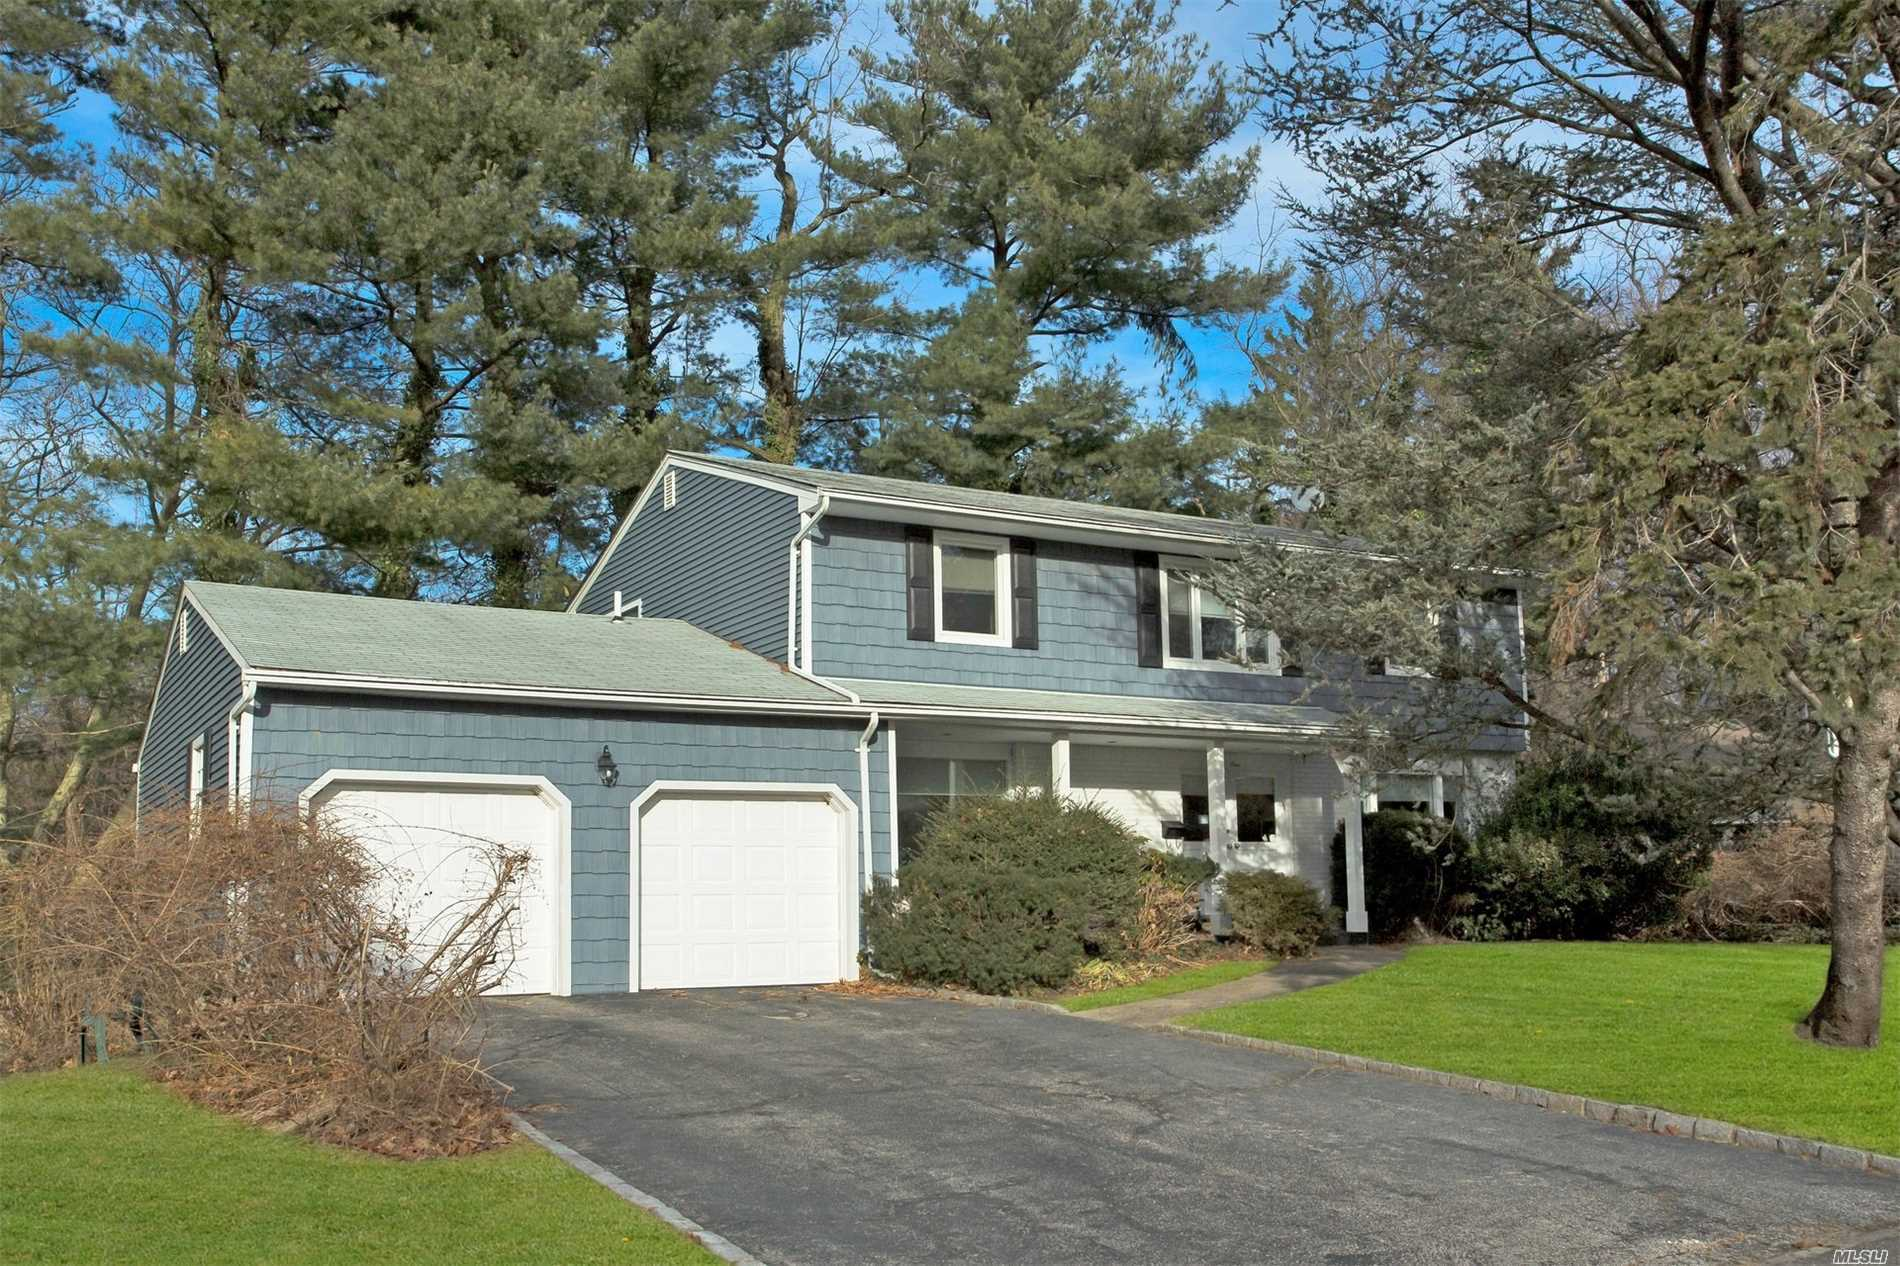 Very Well Maintained Colonial In Port Washington Estates. Gorgeous Floor To Ceiling Windows Bring Beautiful Nature Views Into The Home. Large Living Room With Hardwood Floors And Cozy Fire Place. Spacious Kitchen With Silestone Counter Tops, Induction Cooking, Subzero Refrigerator And Charming Eating Area. Master Suite W/Beautiful Sitting Area. Close To Beach, Golf Course, Train Station, Shopping, And Restaurants. Beach & Mooring Rights. Half An Hour To New York City. Port Washington Schools.